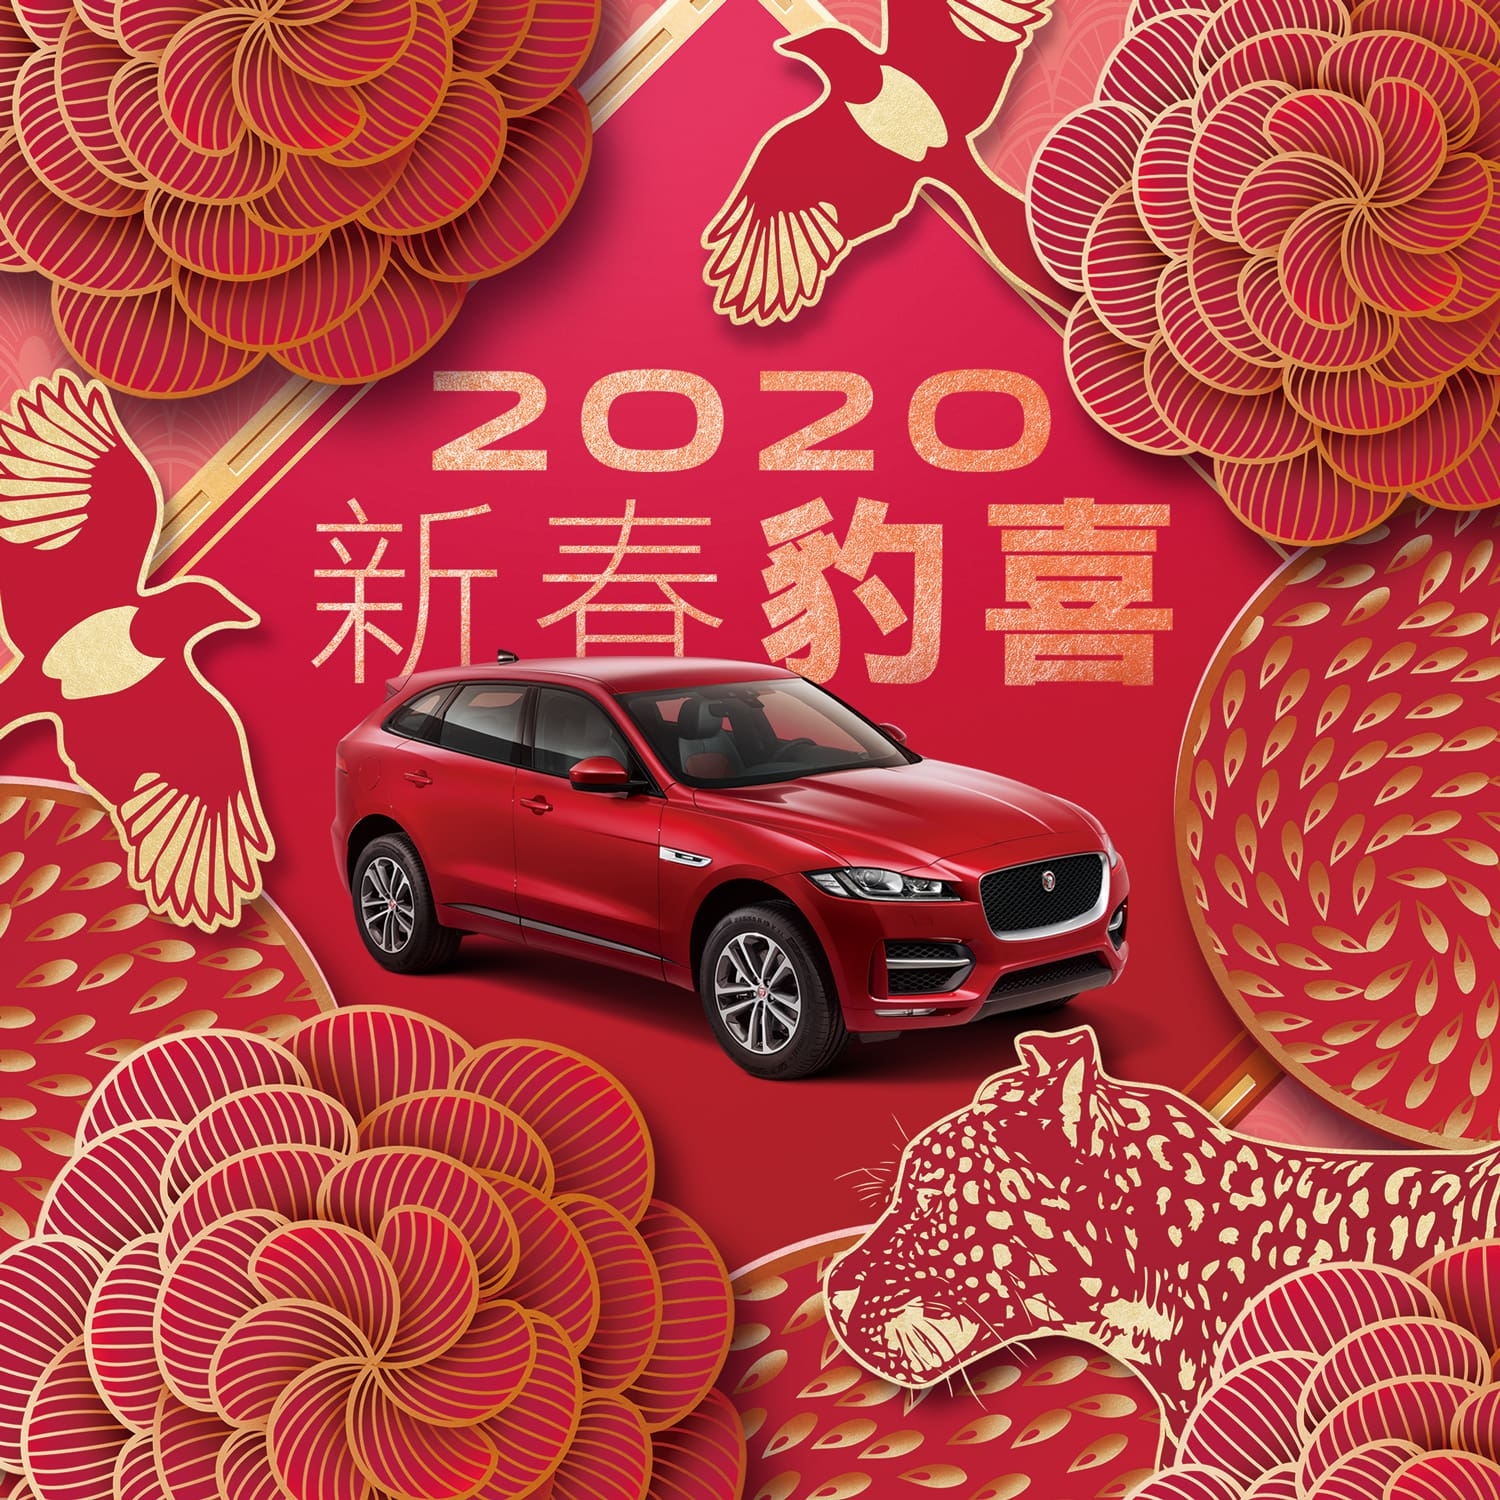 Avail Discounts Up to P1 Million for Jaguar Vehicles to Celebrate Chinese New Year